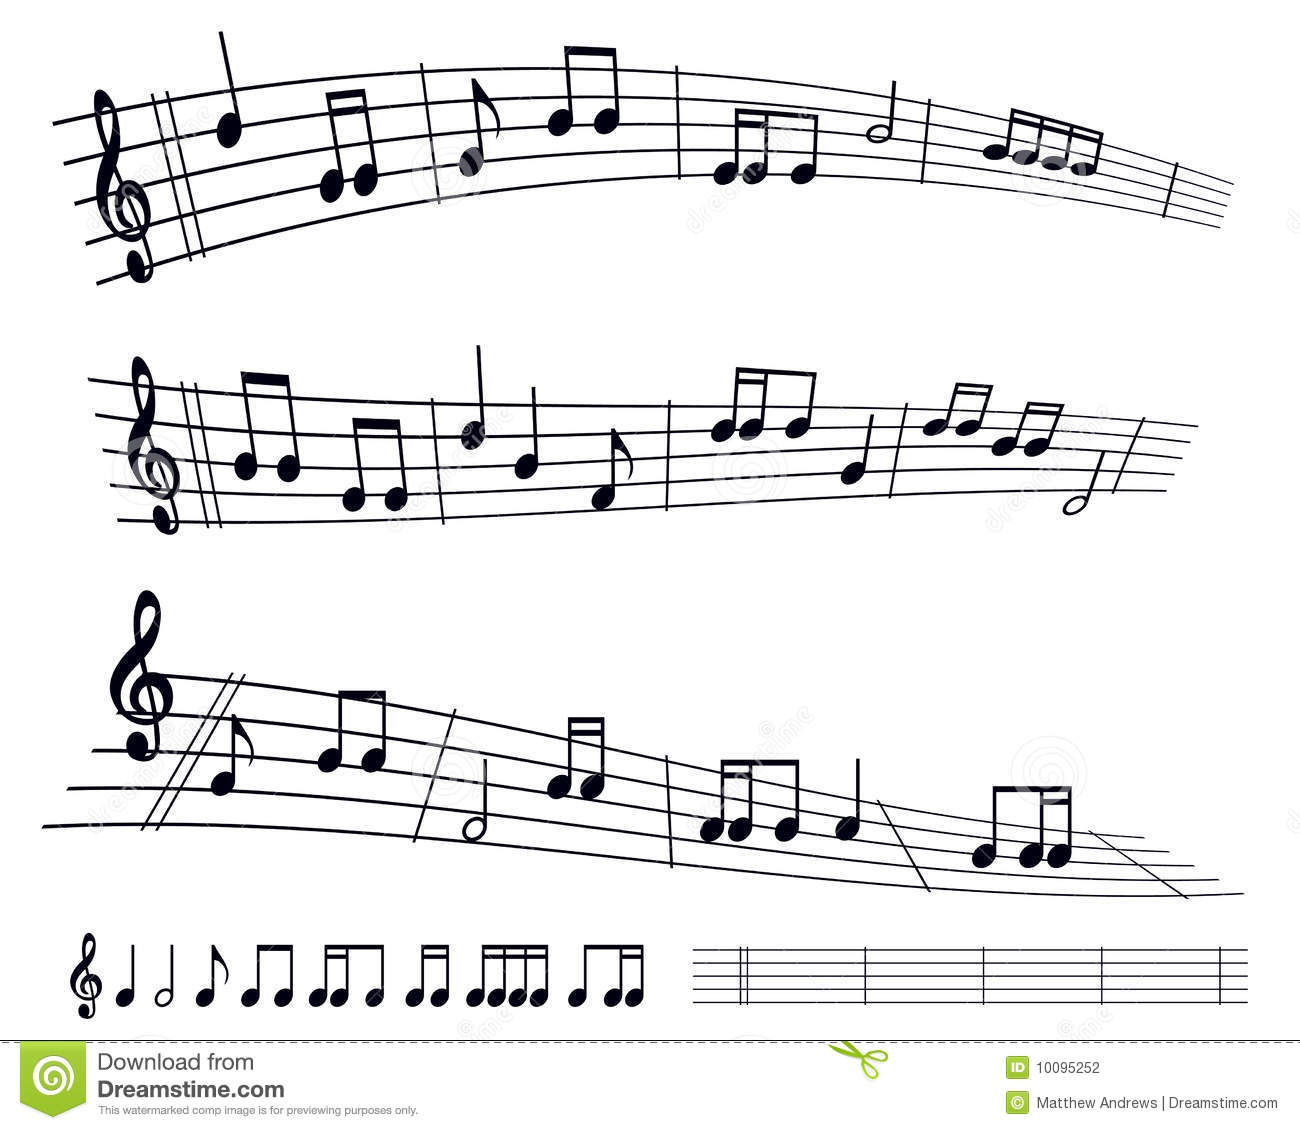 Music sheet clipart graphic free Sheet music clip art - ClipartFox graphic free